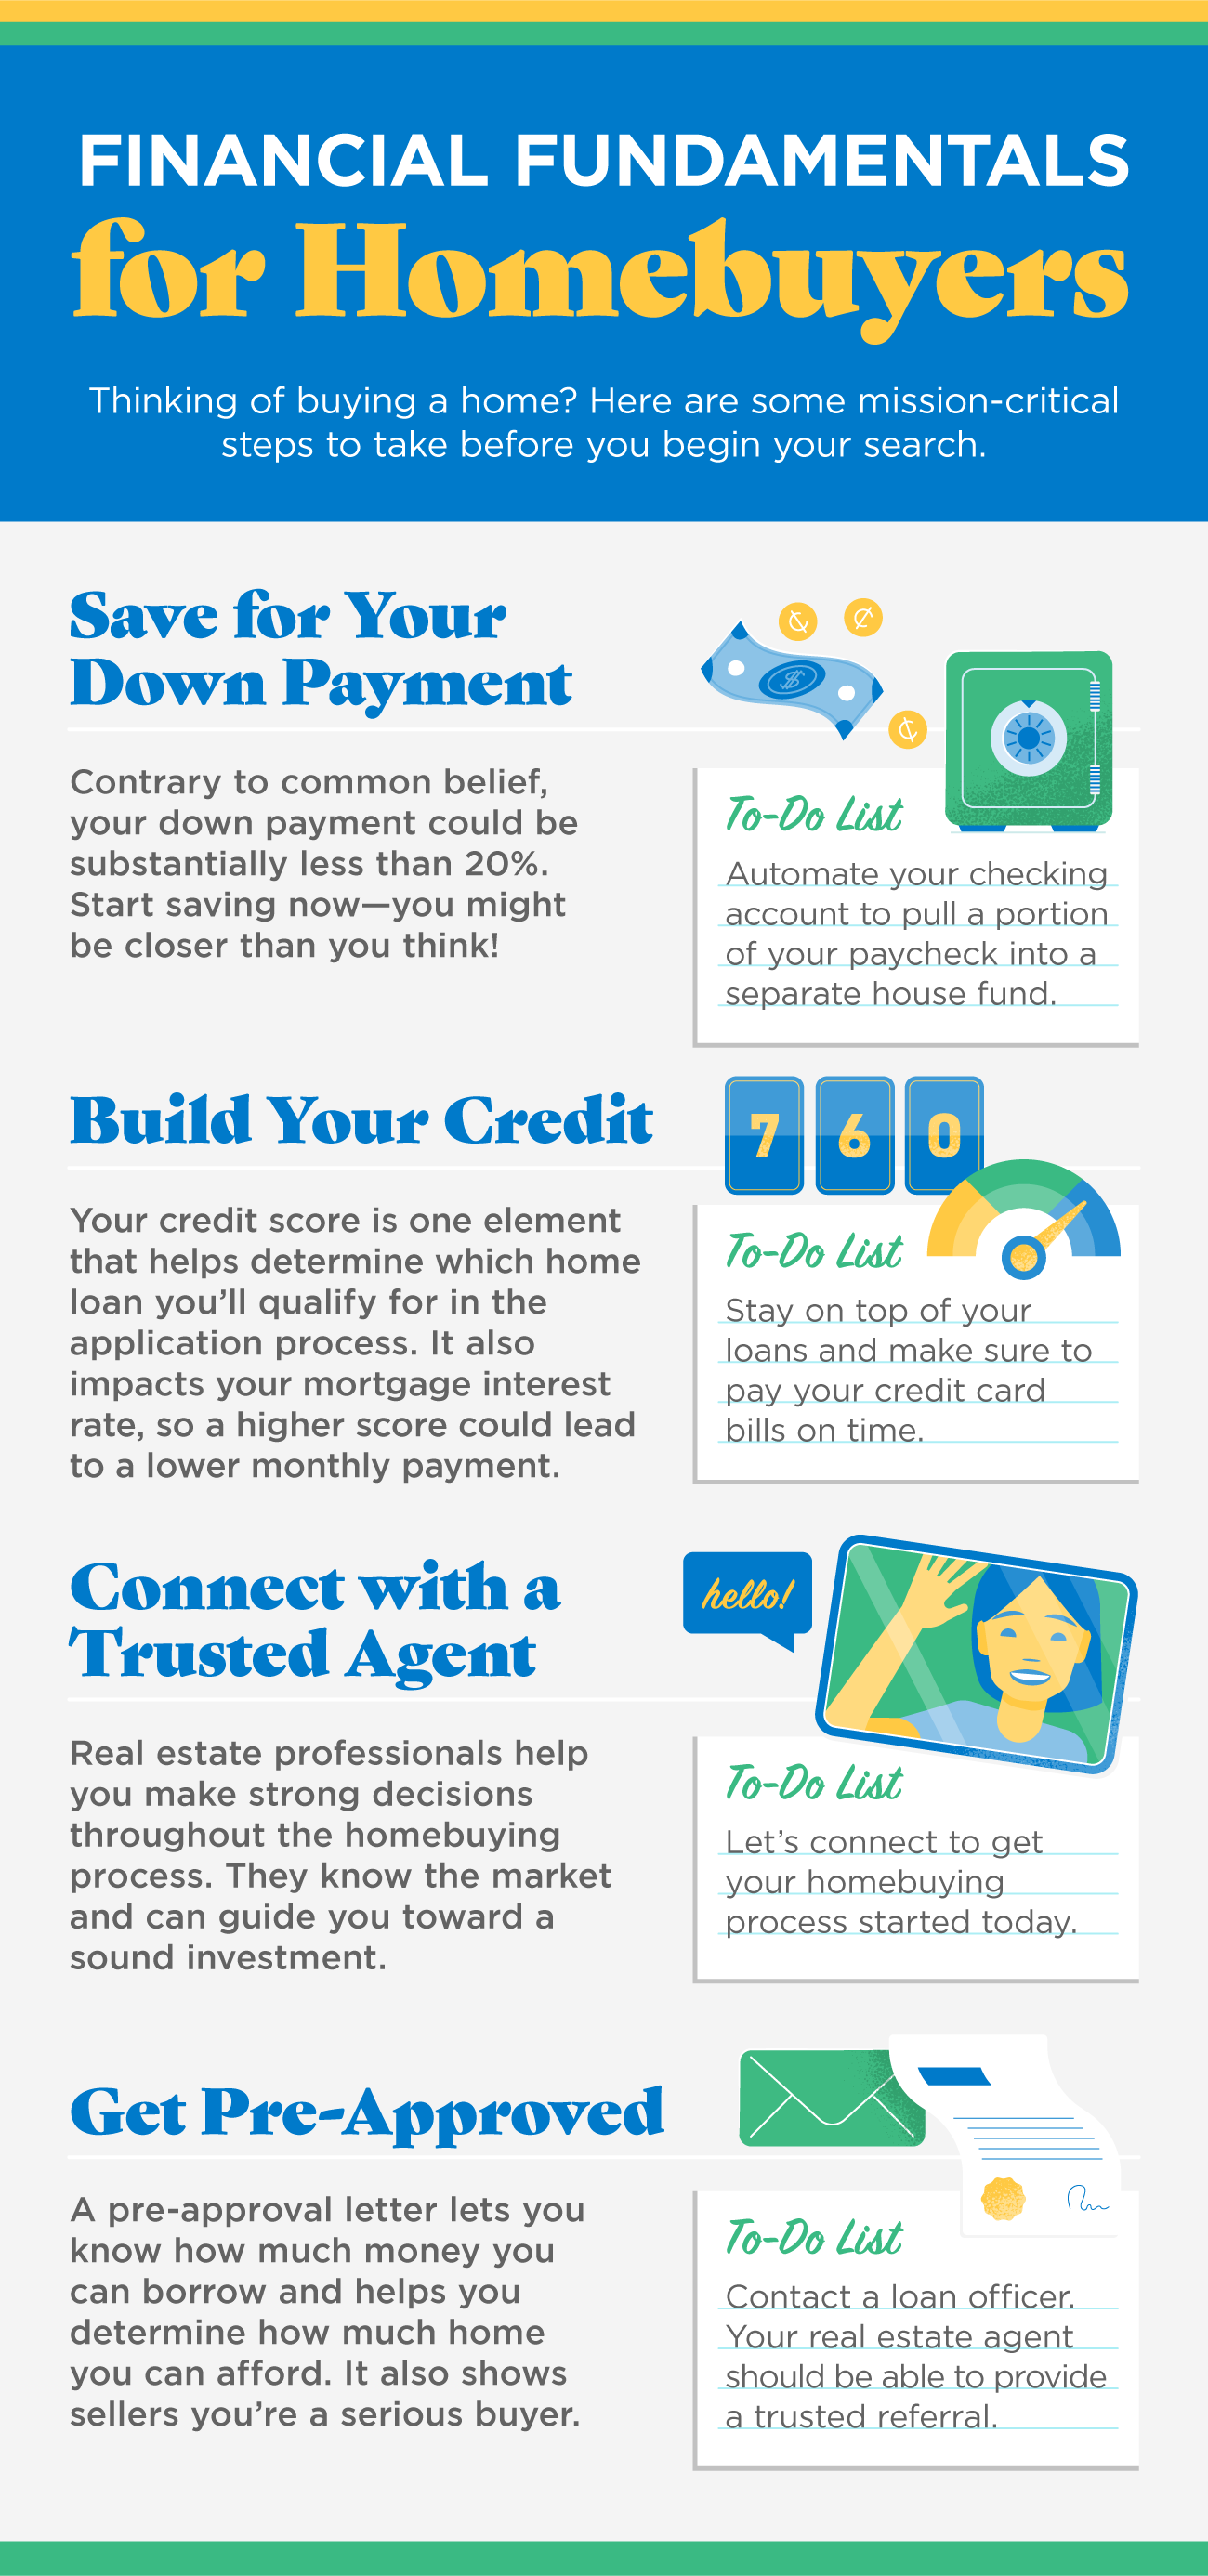 Financial Fundamentals for Homebuyers [INFOGRAPHIC] | Bridge Builders